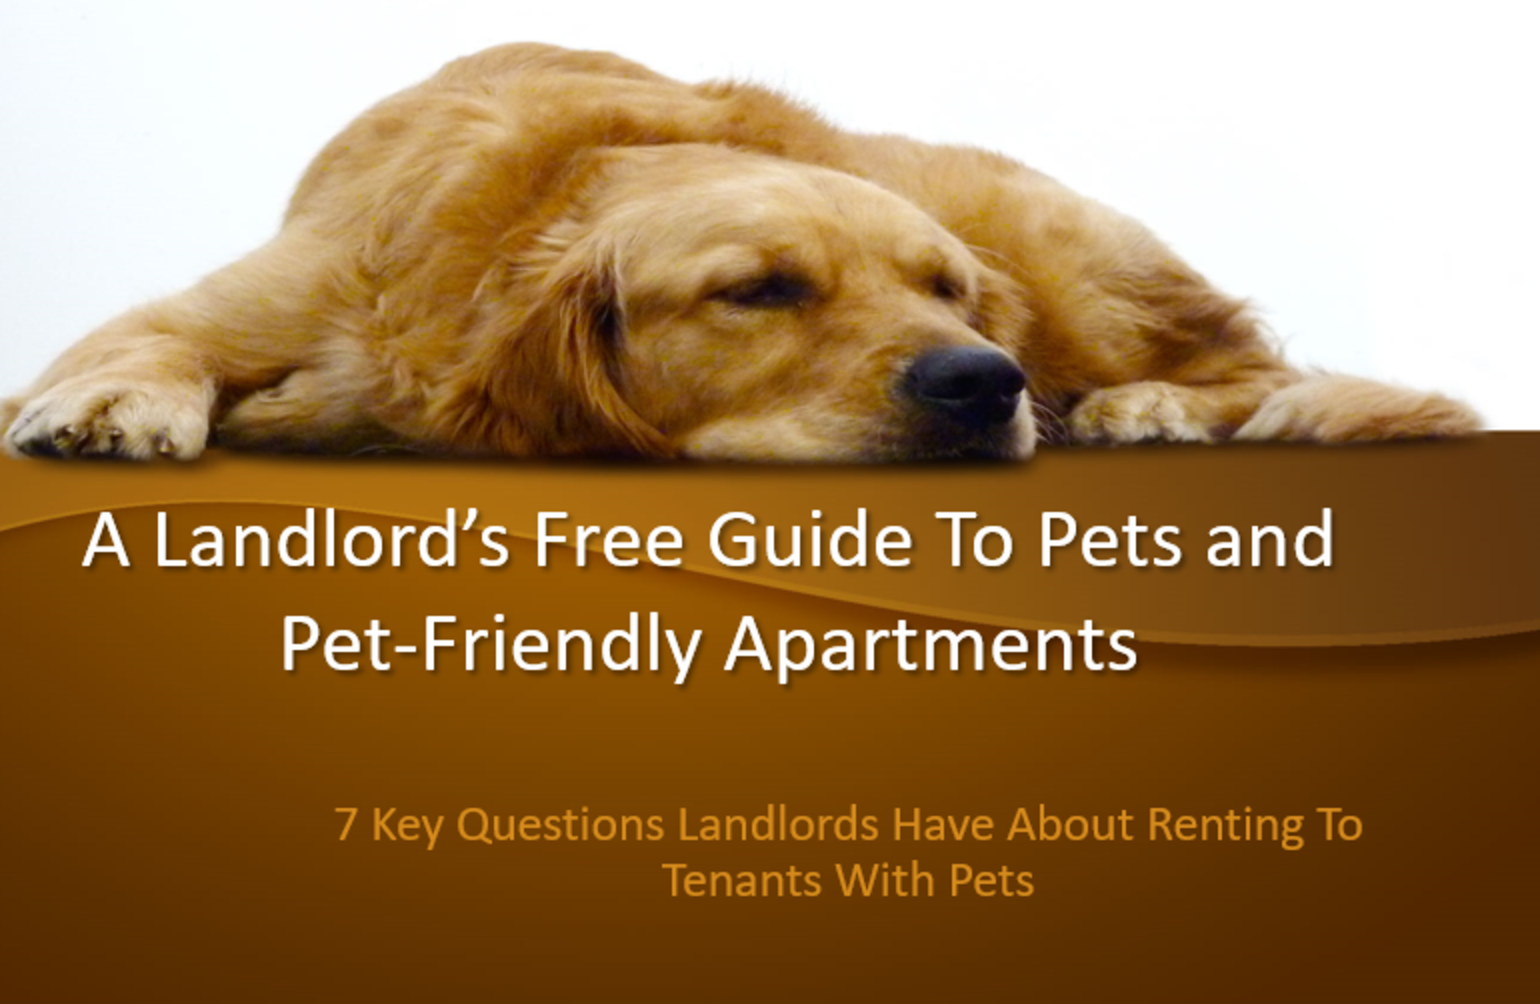 A landlord's guide to pets and pet-friendly apartments